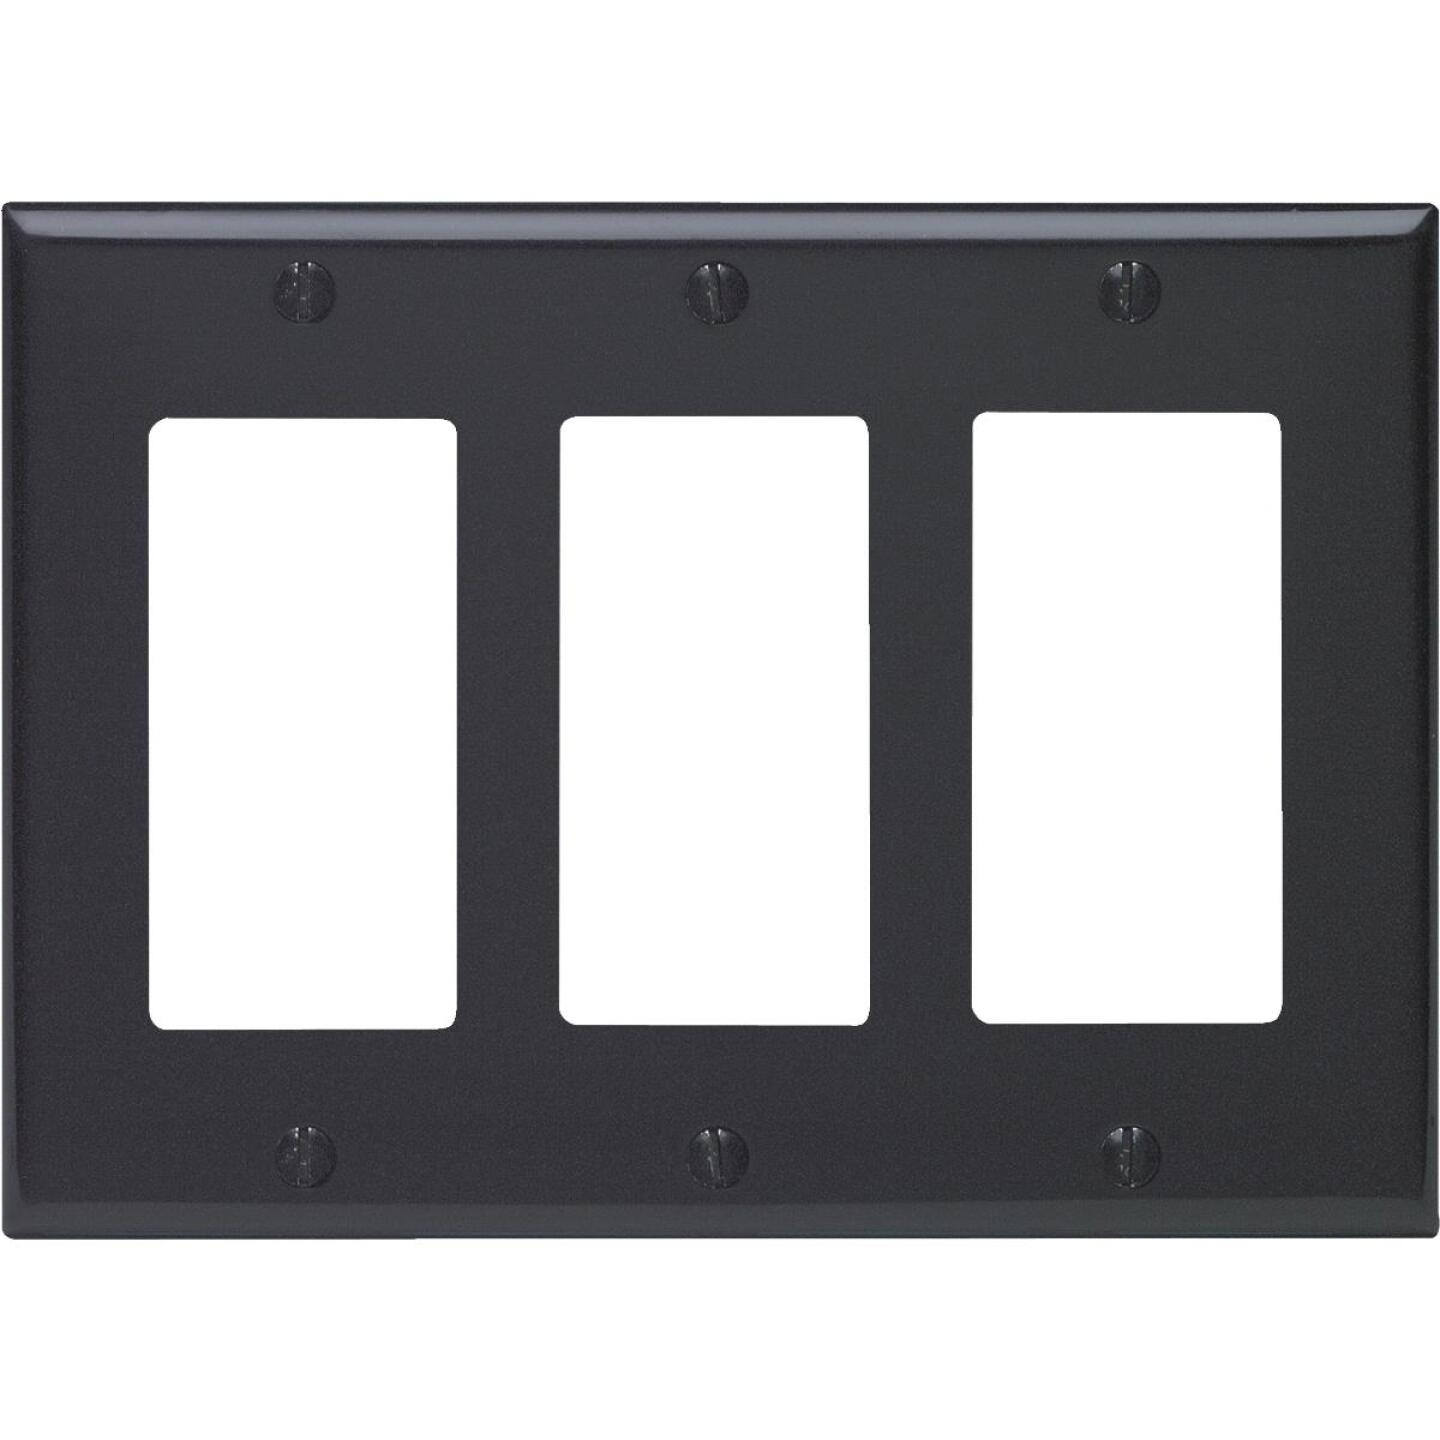 Leviton Decora 3-Gang Smooth Plastic Rocker Decorator Wall Plate, Black Image 1